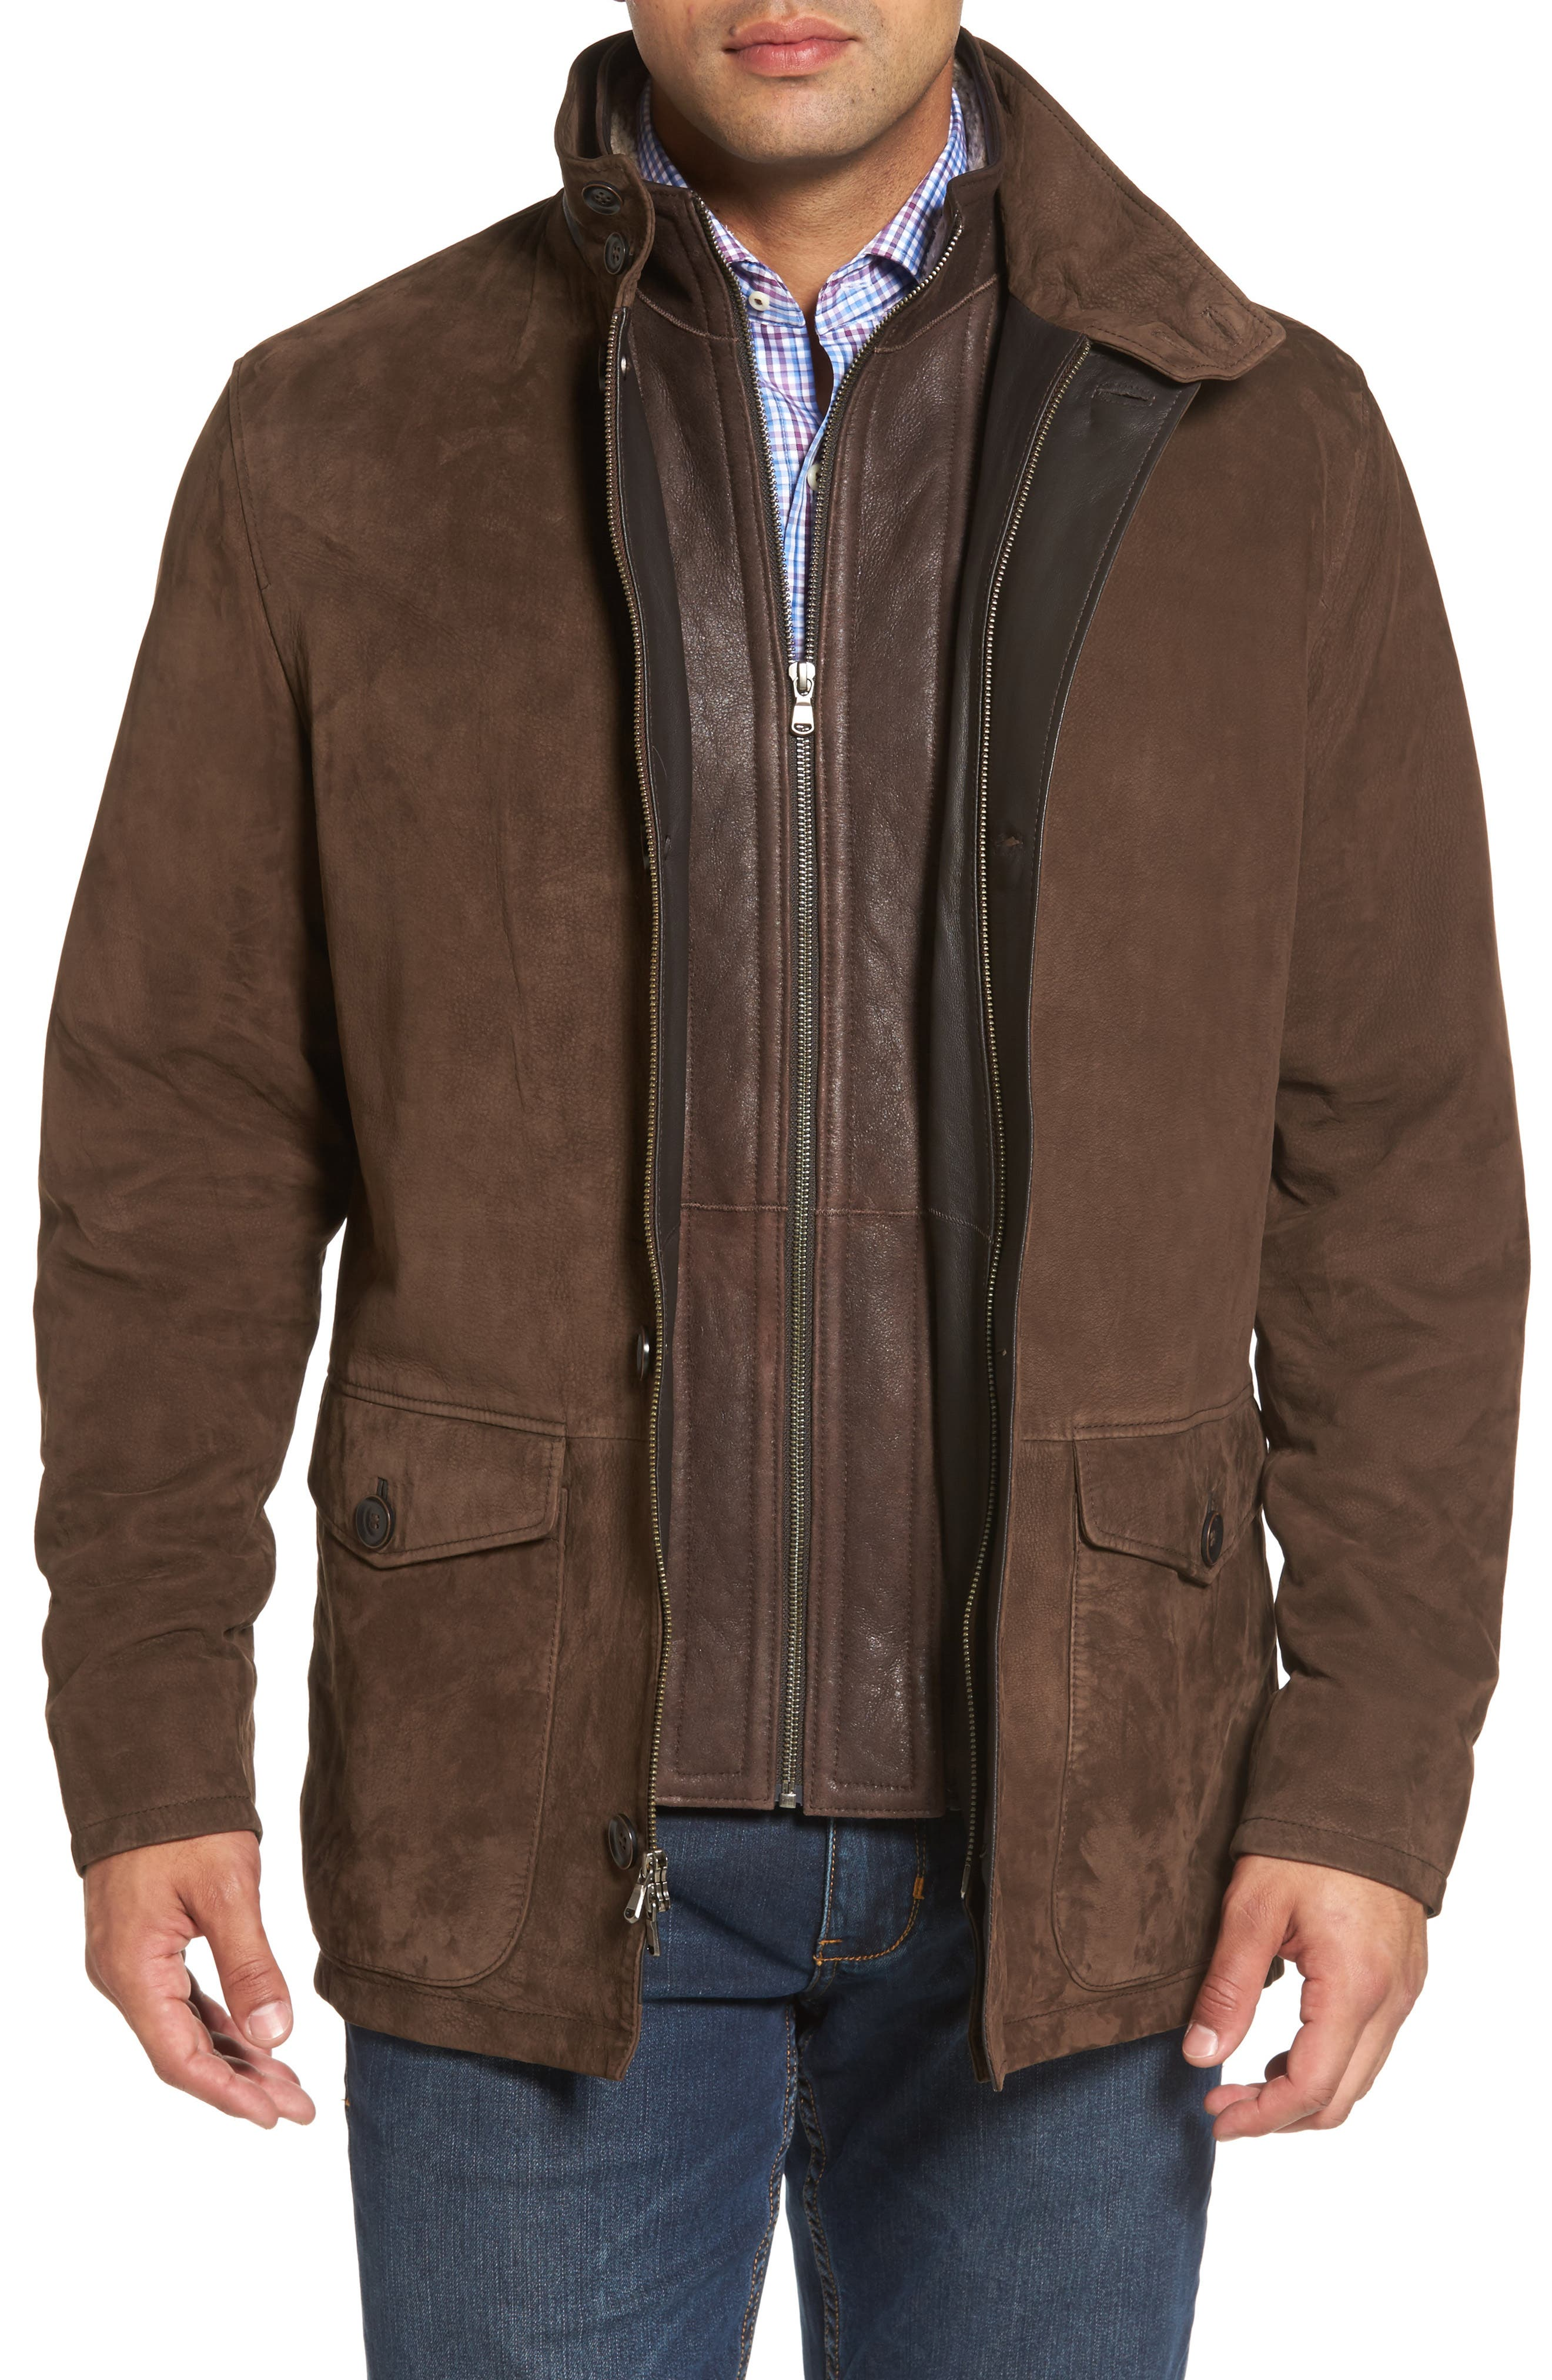 Main Image - Peter Millar Steamboat Leather Jacket with Genuine Shearling Lined Bib